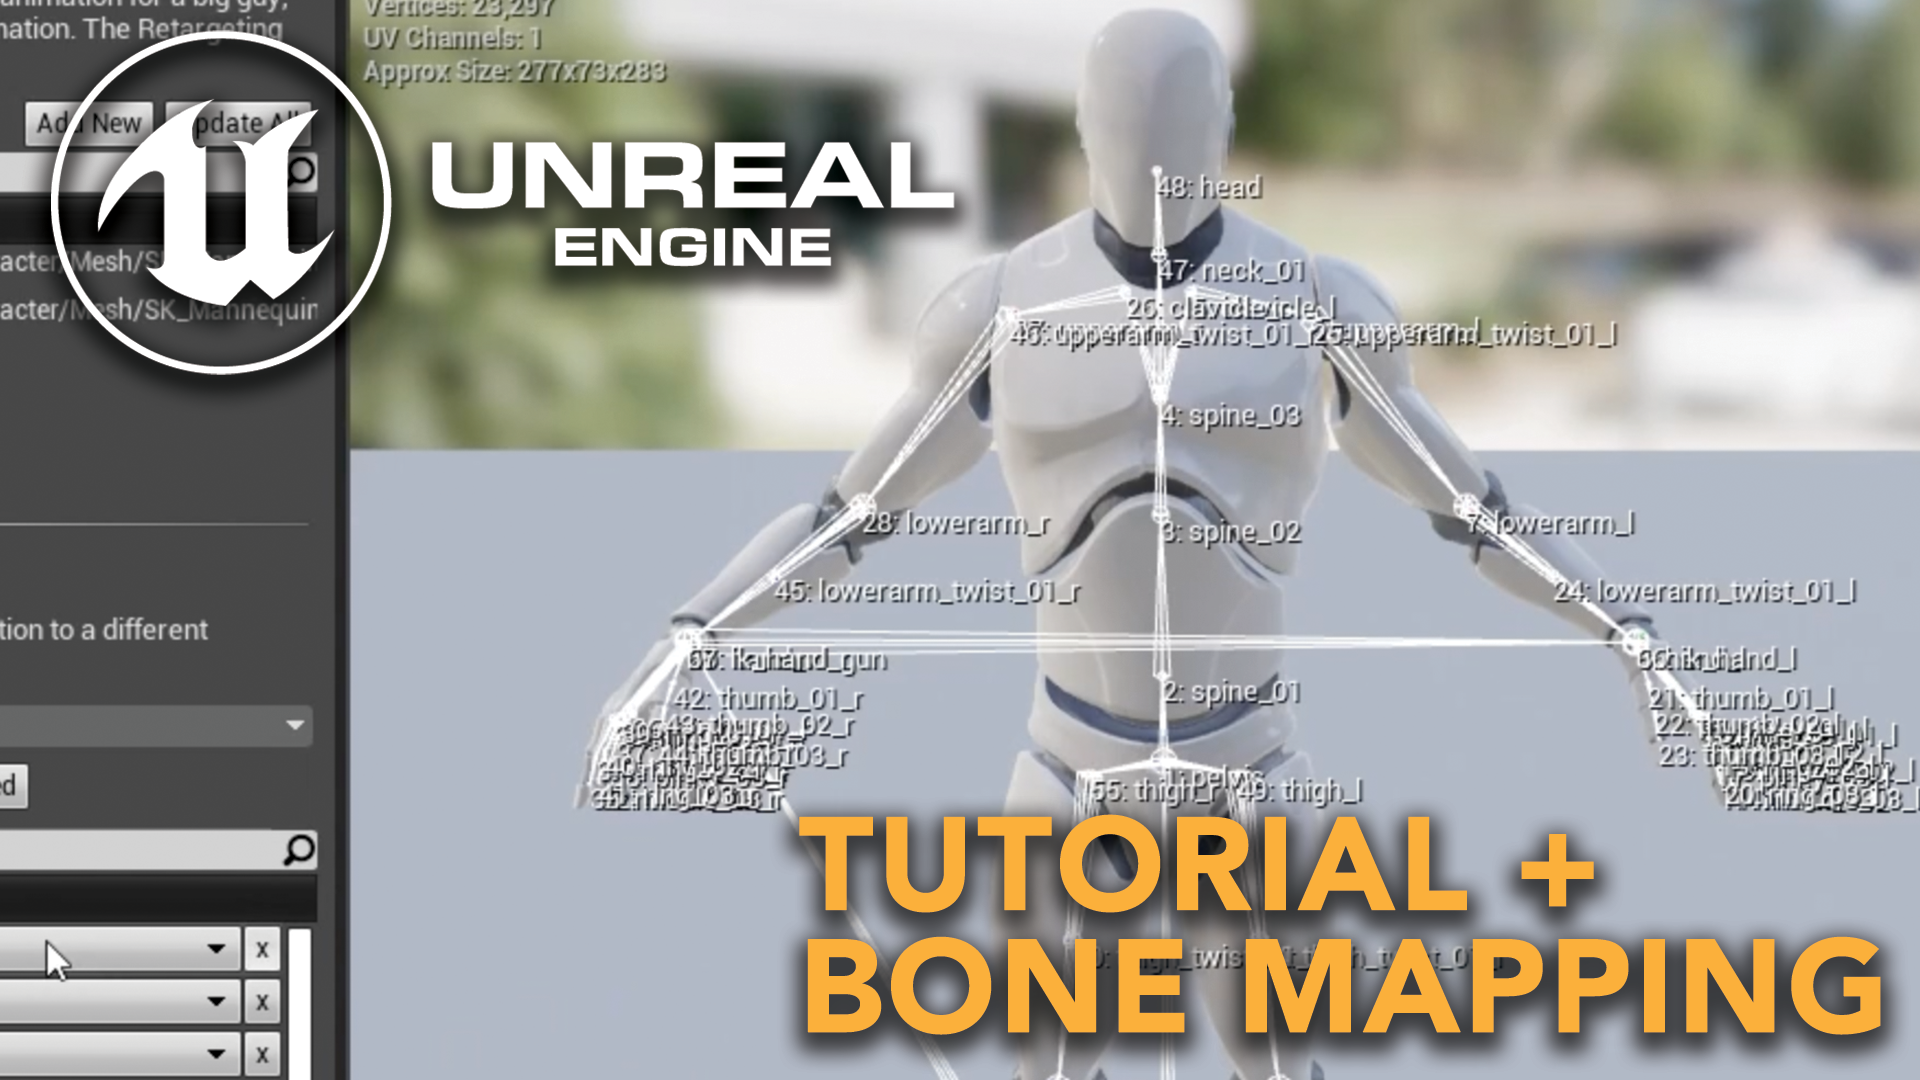 Unreal Engine Tutorial + Bone Mapping